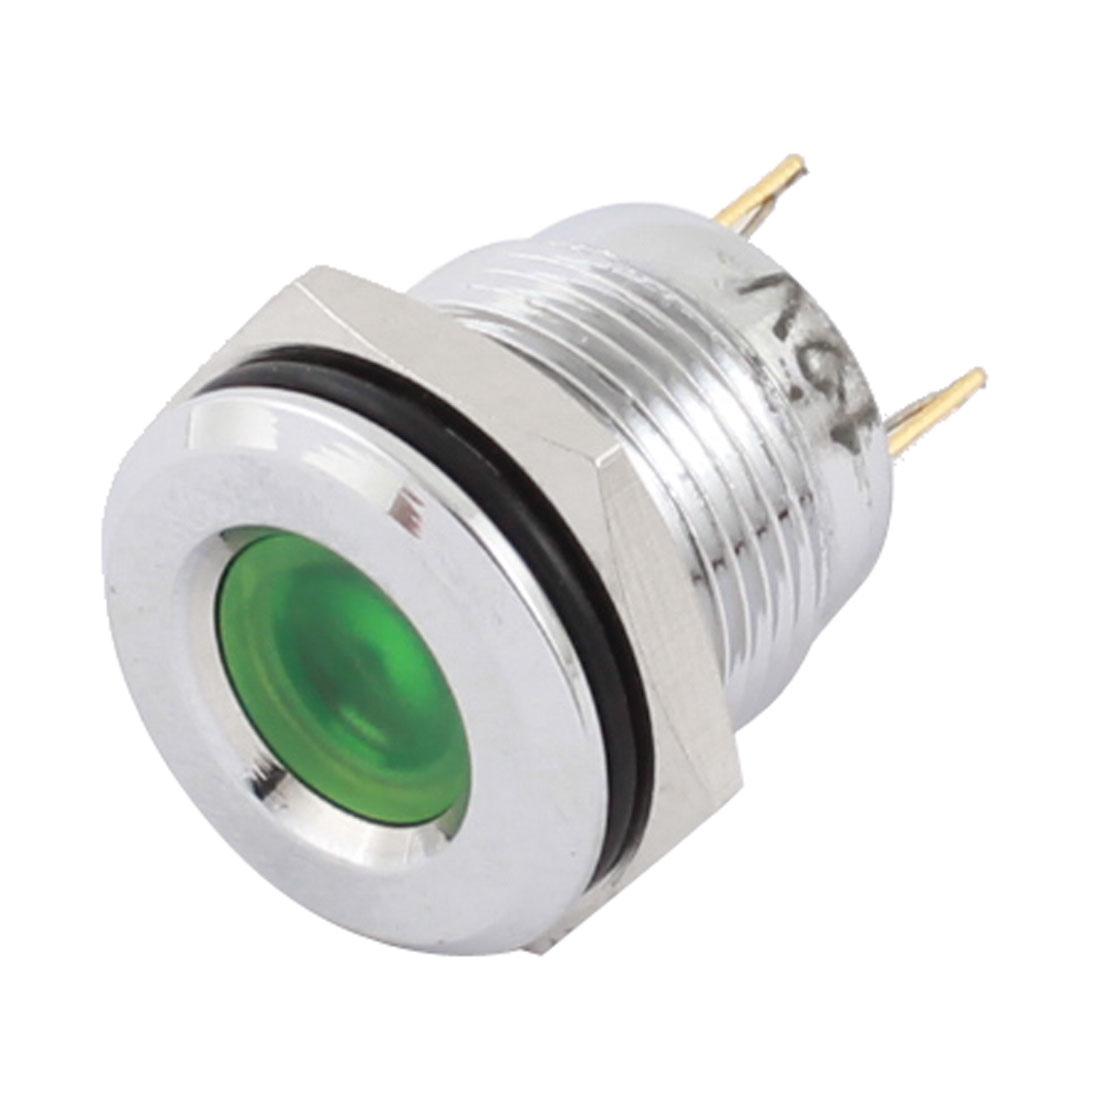 16mm Dia Thread Panel Mount Stainless Steel Green LED Signal Indicator Light Pilot Lamp Bulb DC 12V